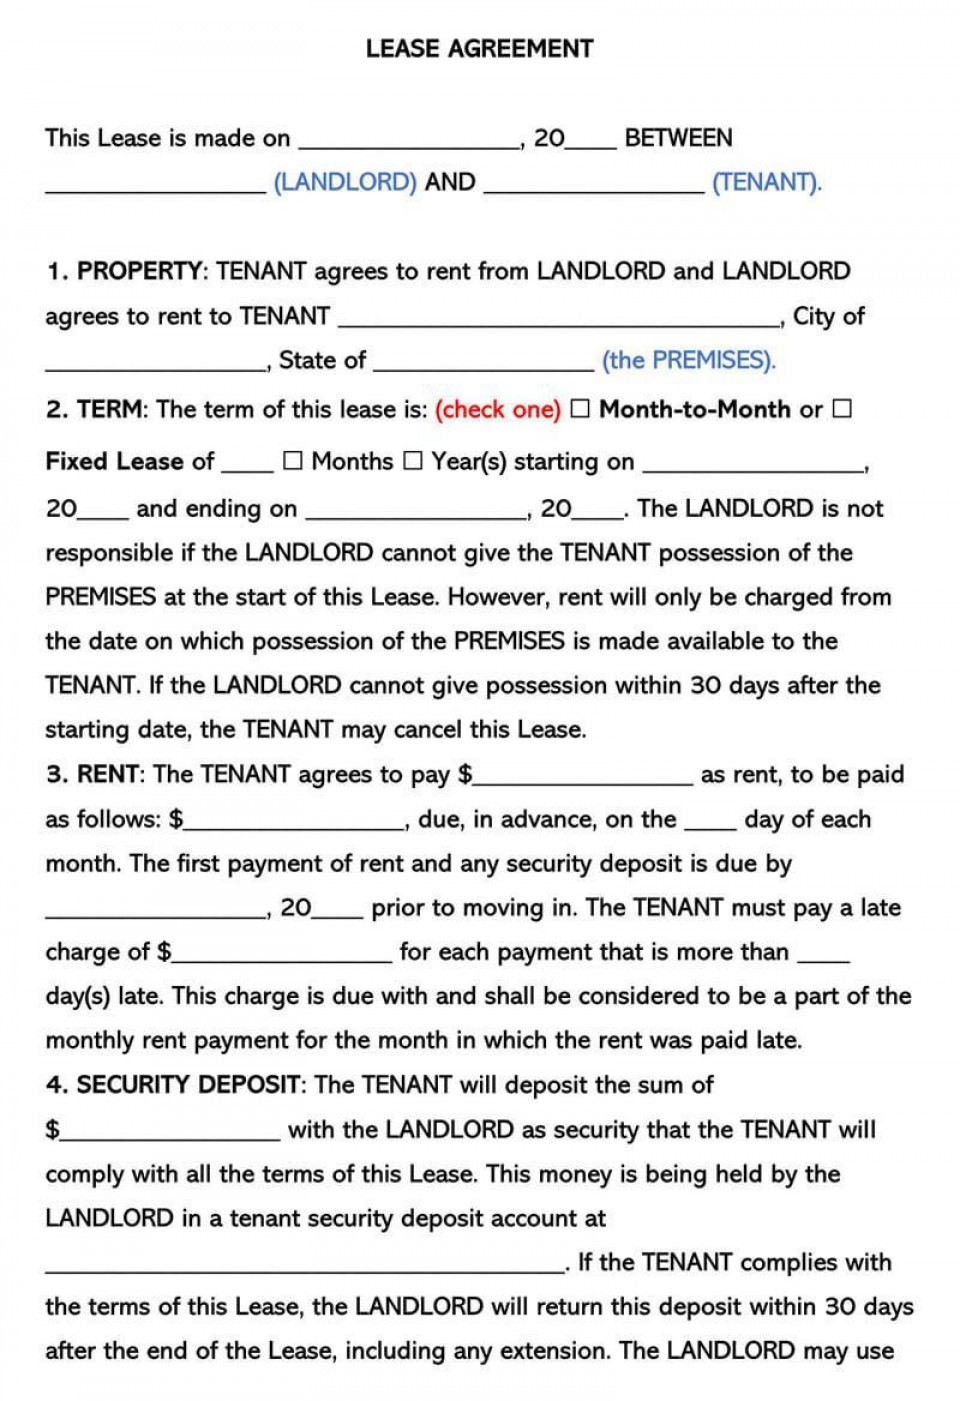 003 Stunning Apartment Lease Agreement Form Texa Example 960